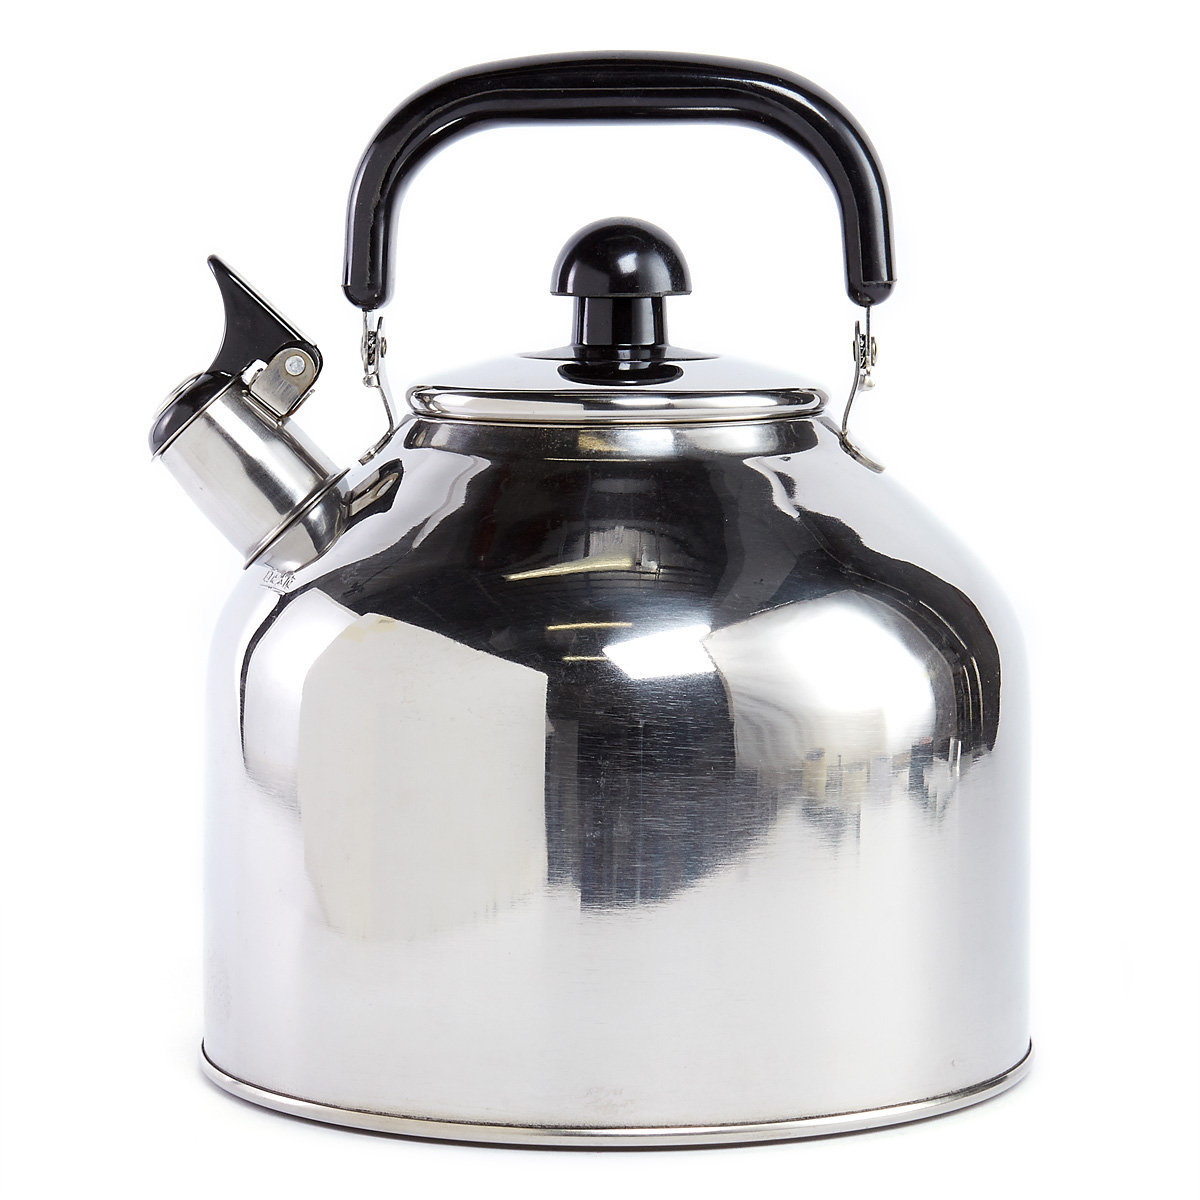 7L stainless steel Kettle-IH